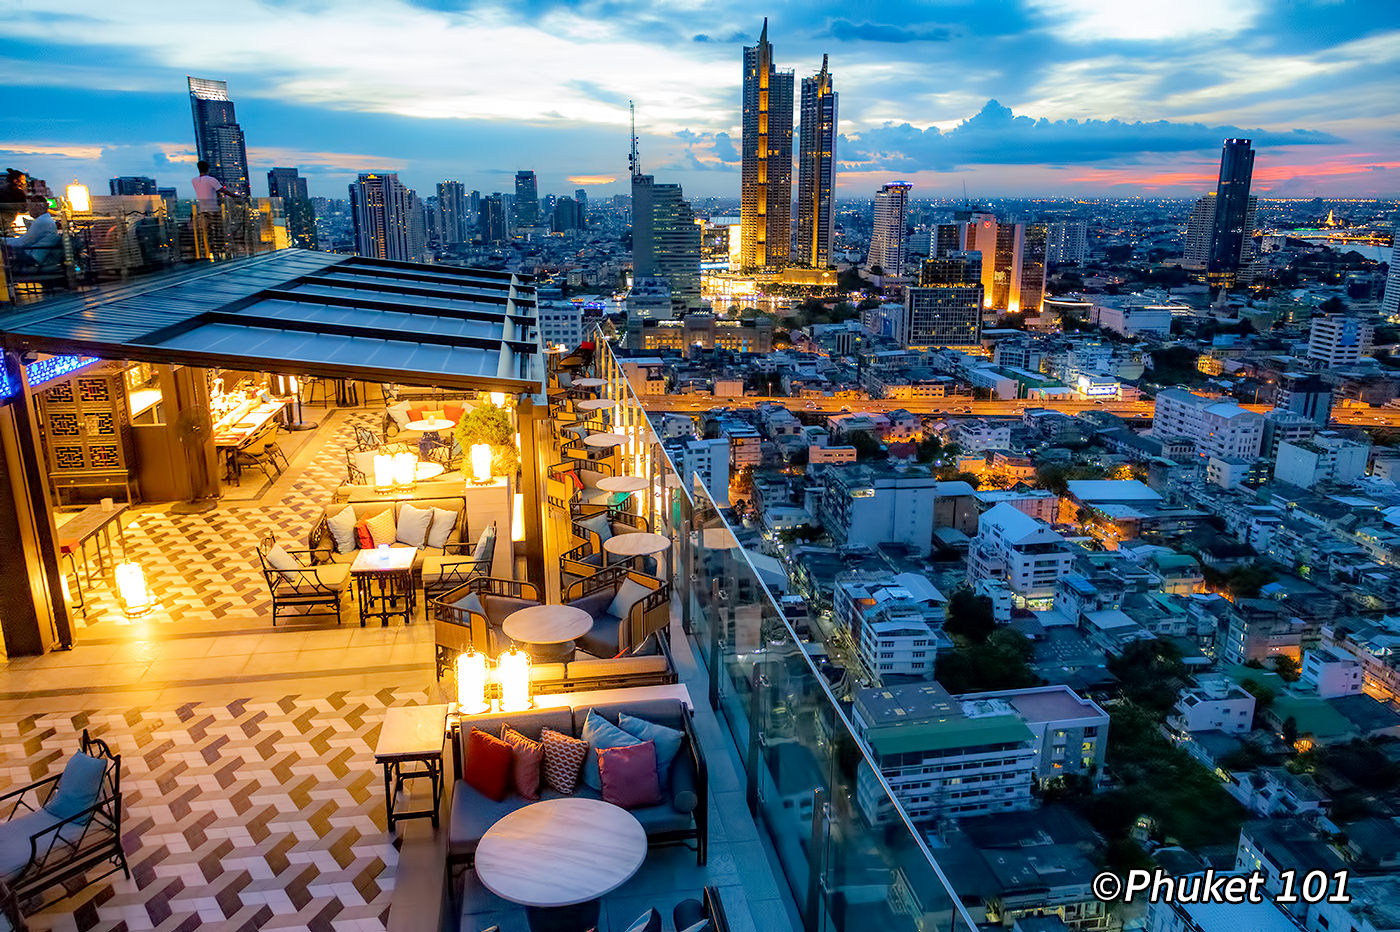 Yao Rooftop Bar at Marriott Bangkok Surawongsee